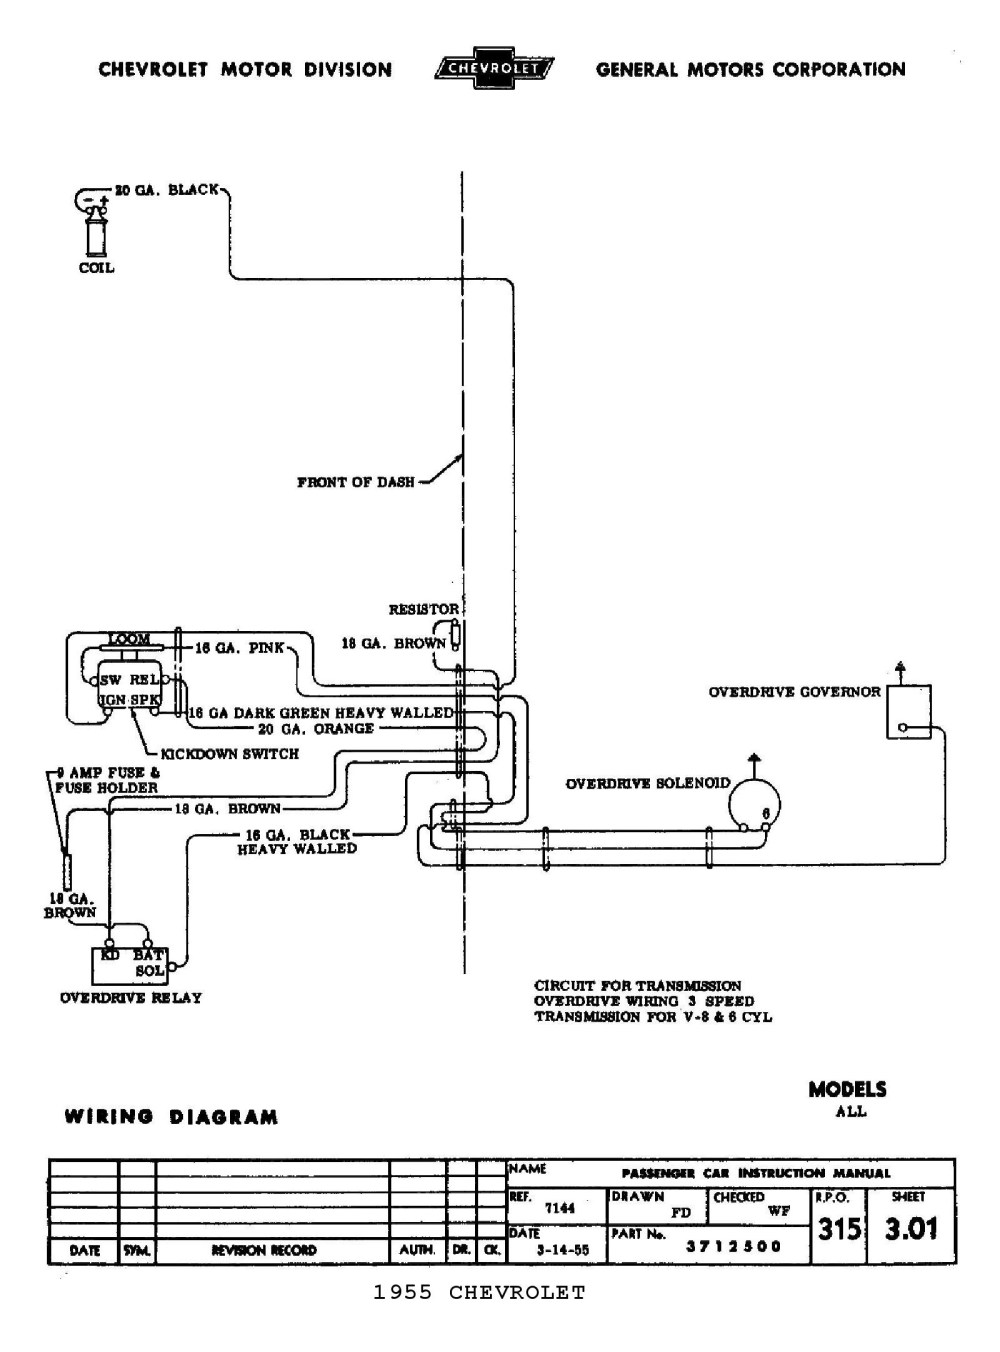 medium resolution of chevy 350 ignition coil wiring diagram ignition coil wiring diagram unique chevy ignition coil wiring